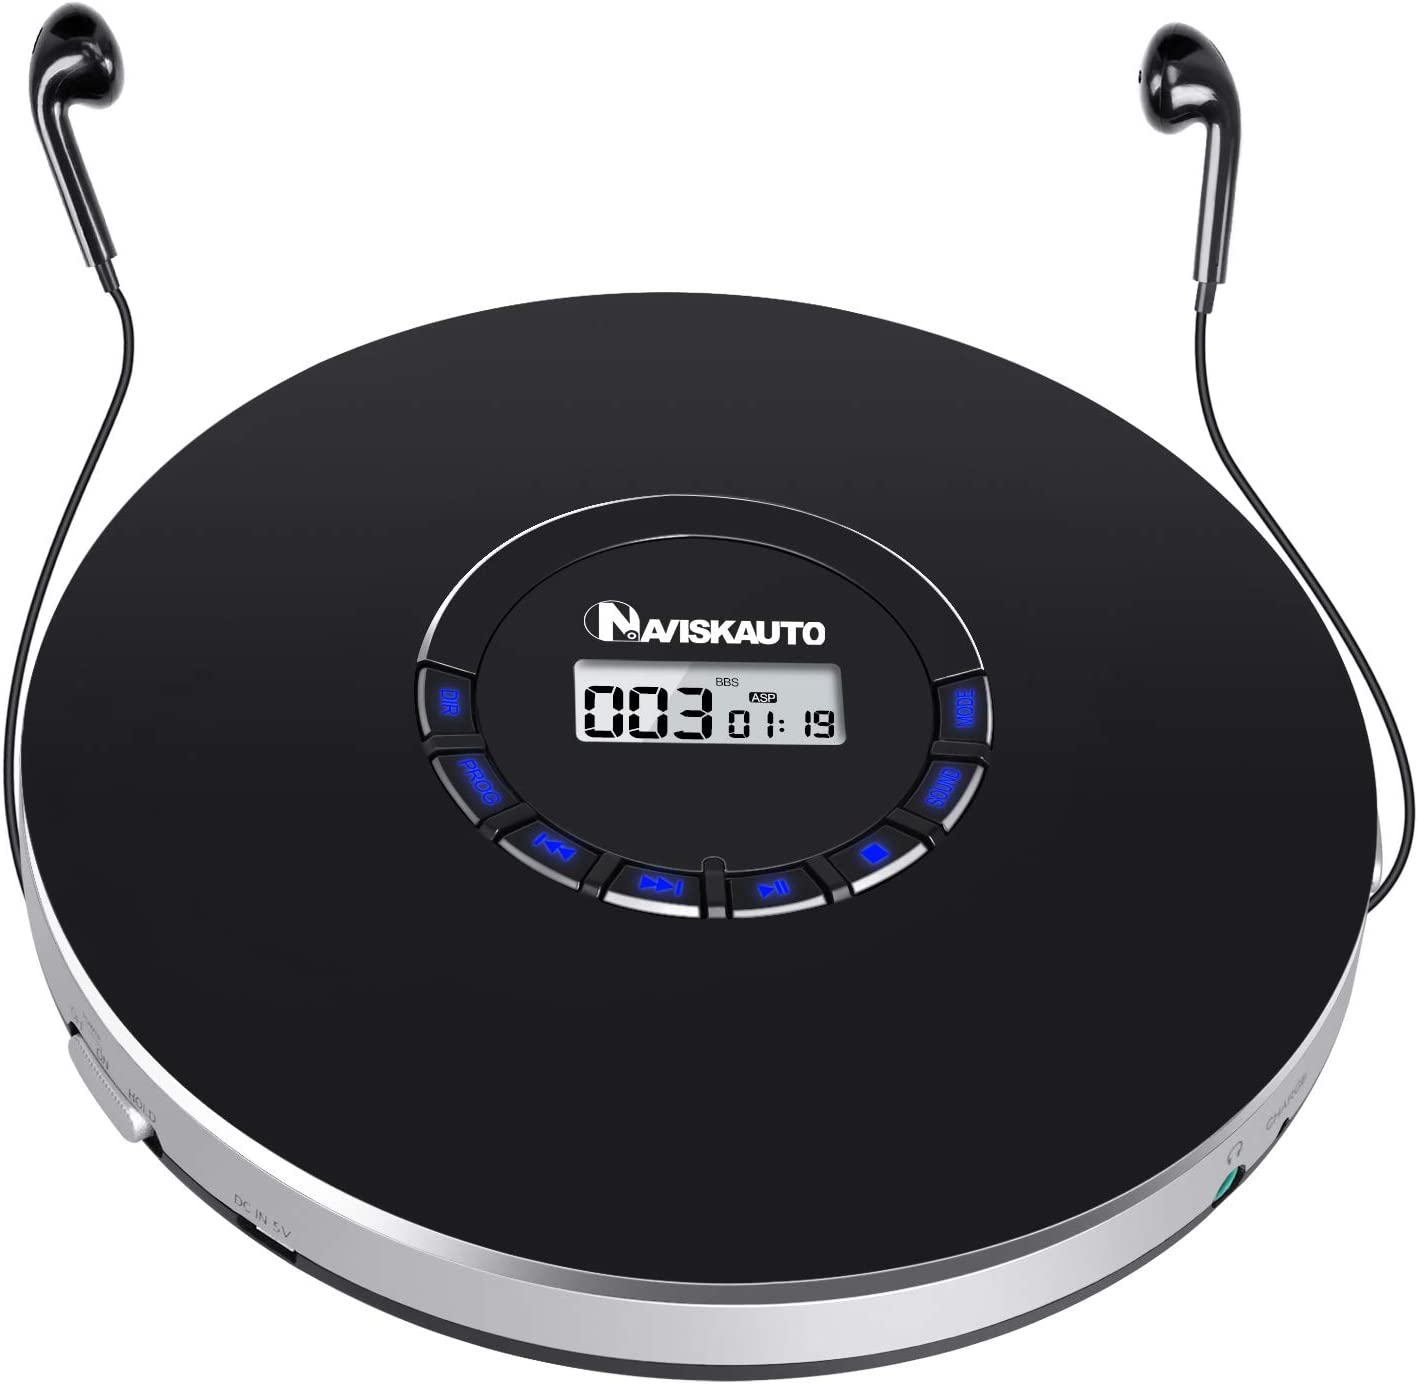 Rechargeable Portable Cd Player, Small Cd Player For Car